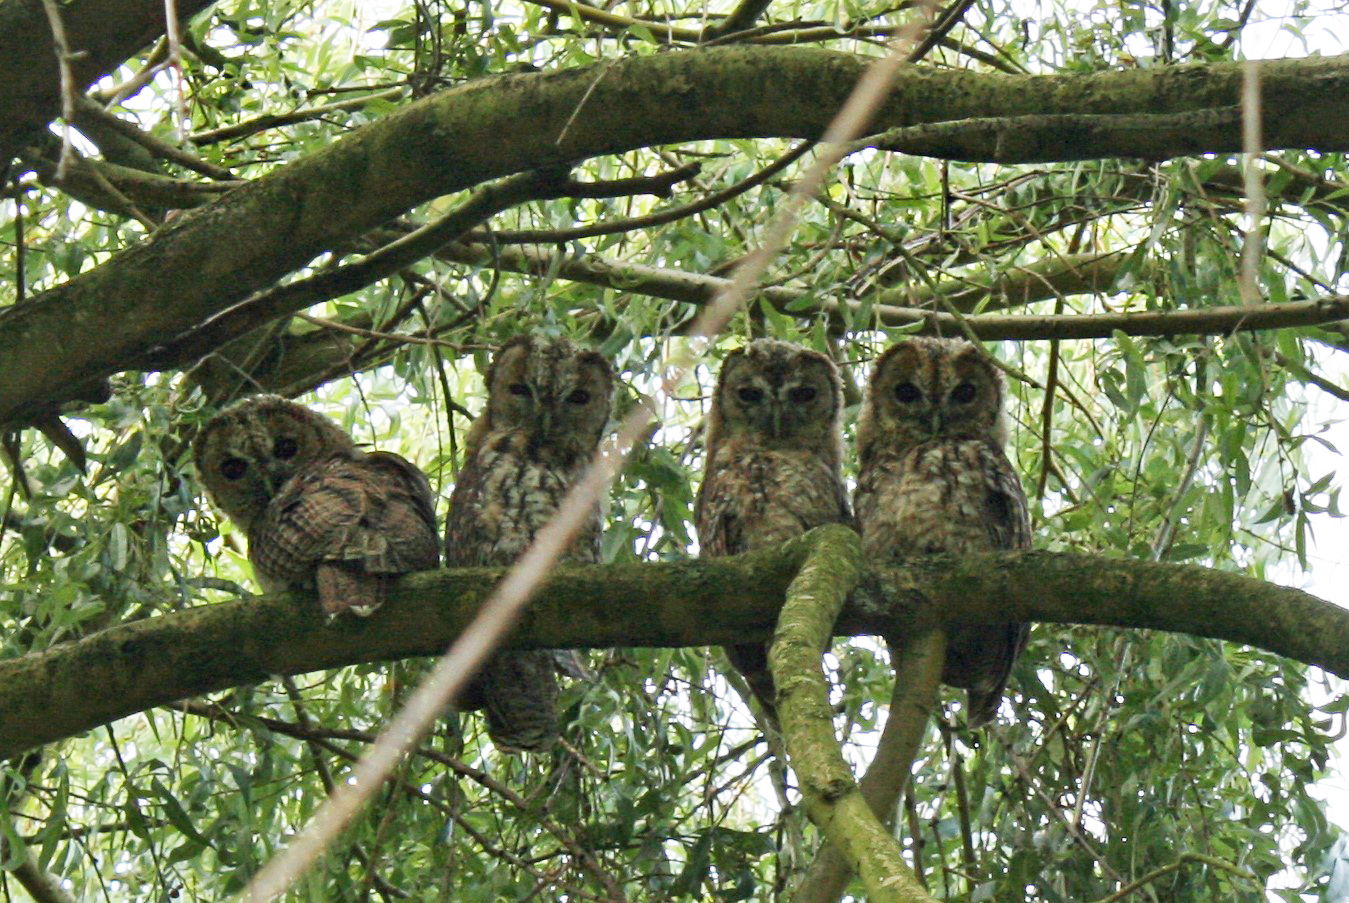 Four owls sit together on tree branch